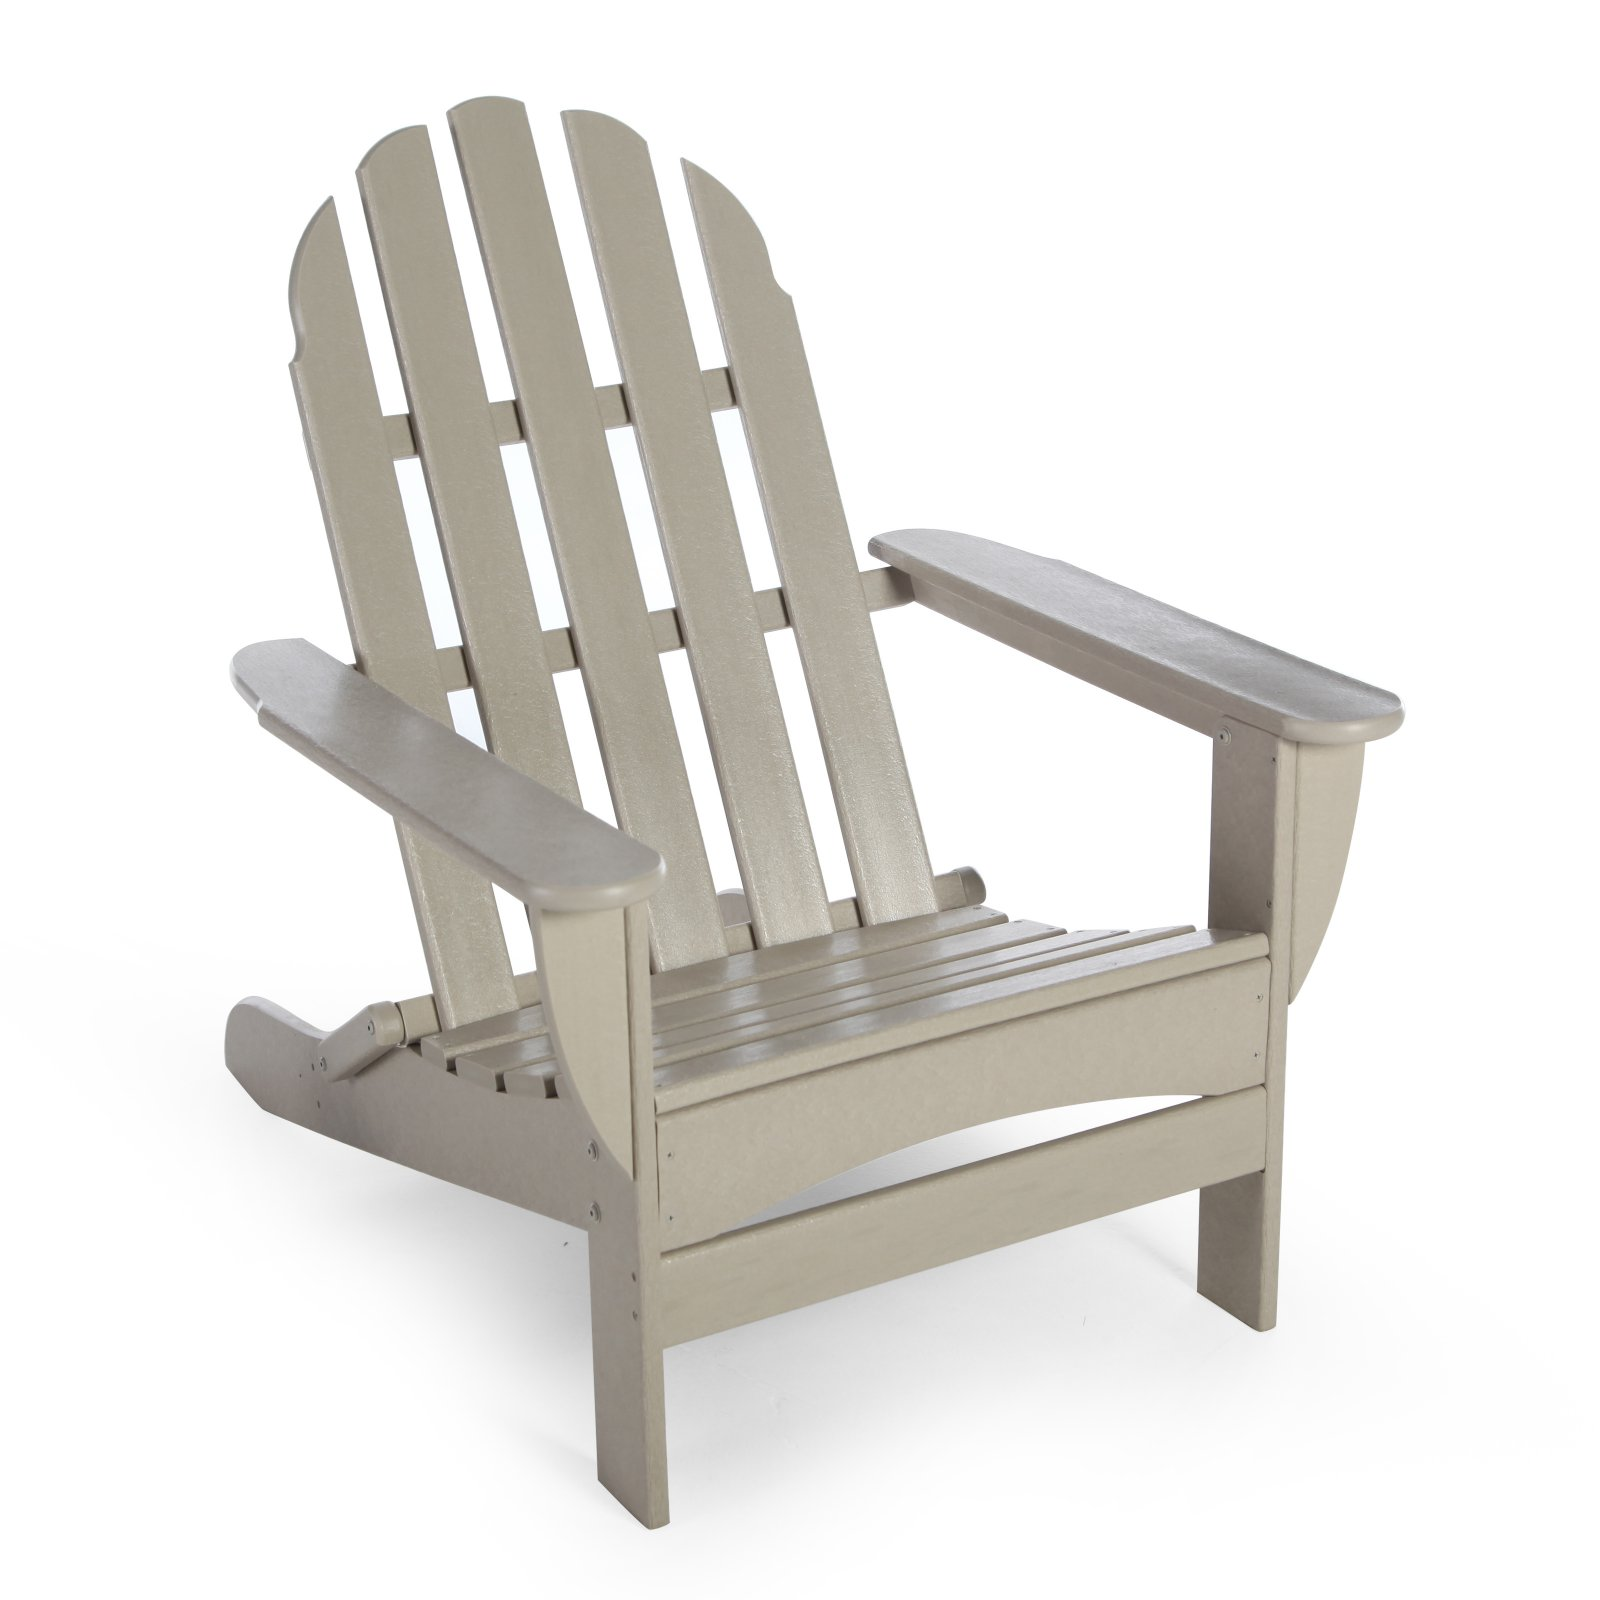 POLYWOOD Recycled Plastic Classic Curveback Adirondack Chair by Poly-Wood